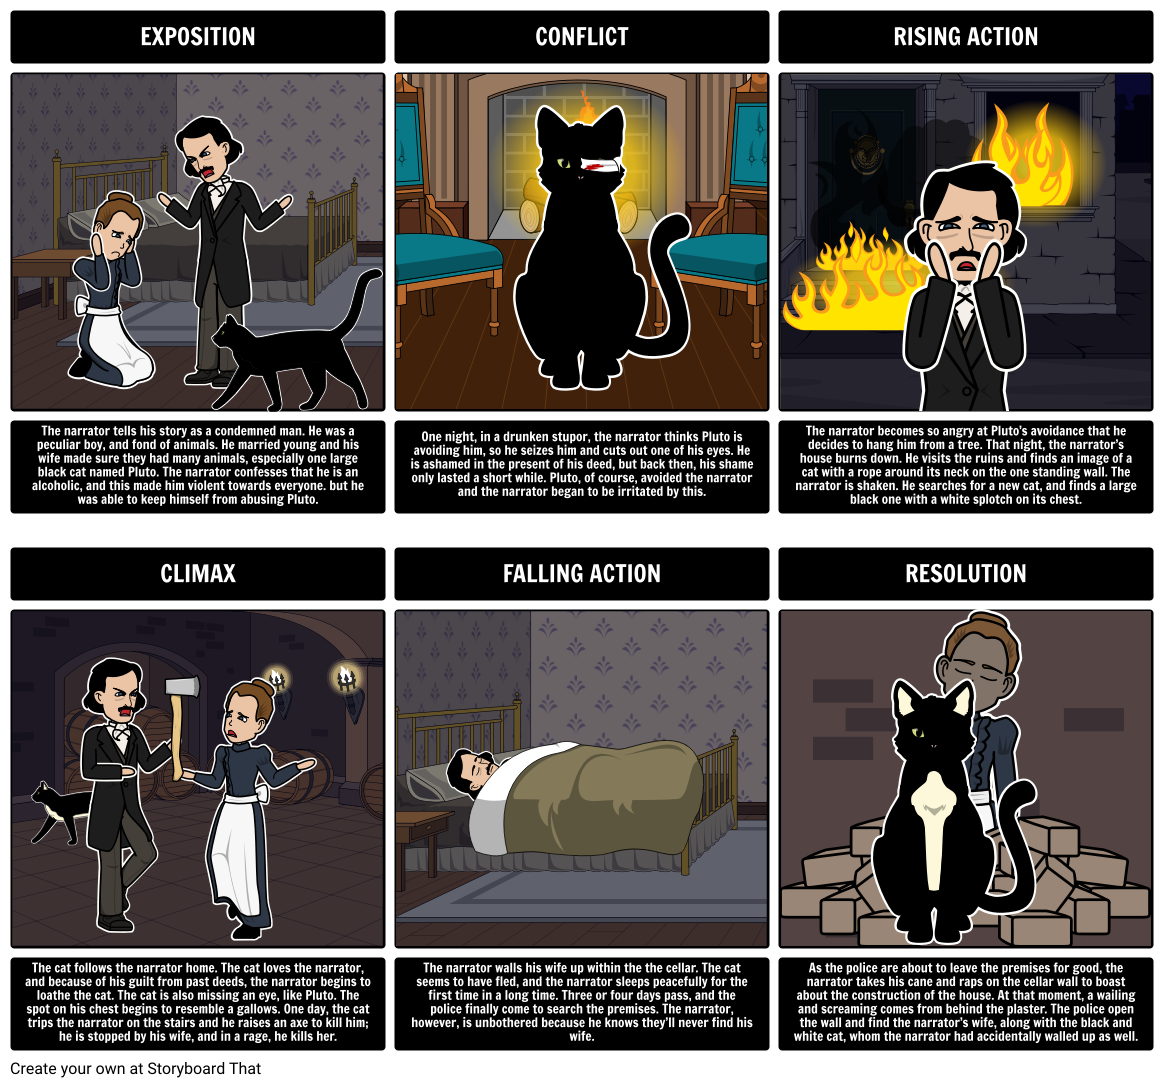 an analysis of the themes of imagination in the house of usher by edgar allan poe The fall of the house of usher summary & lesson plans include summary, vocabulary, character analysis, plot diagram, theme, for edgar allan poe's short story.